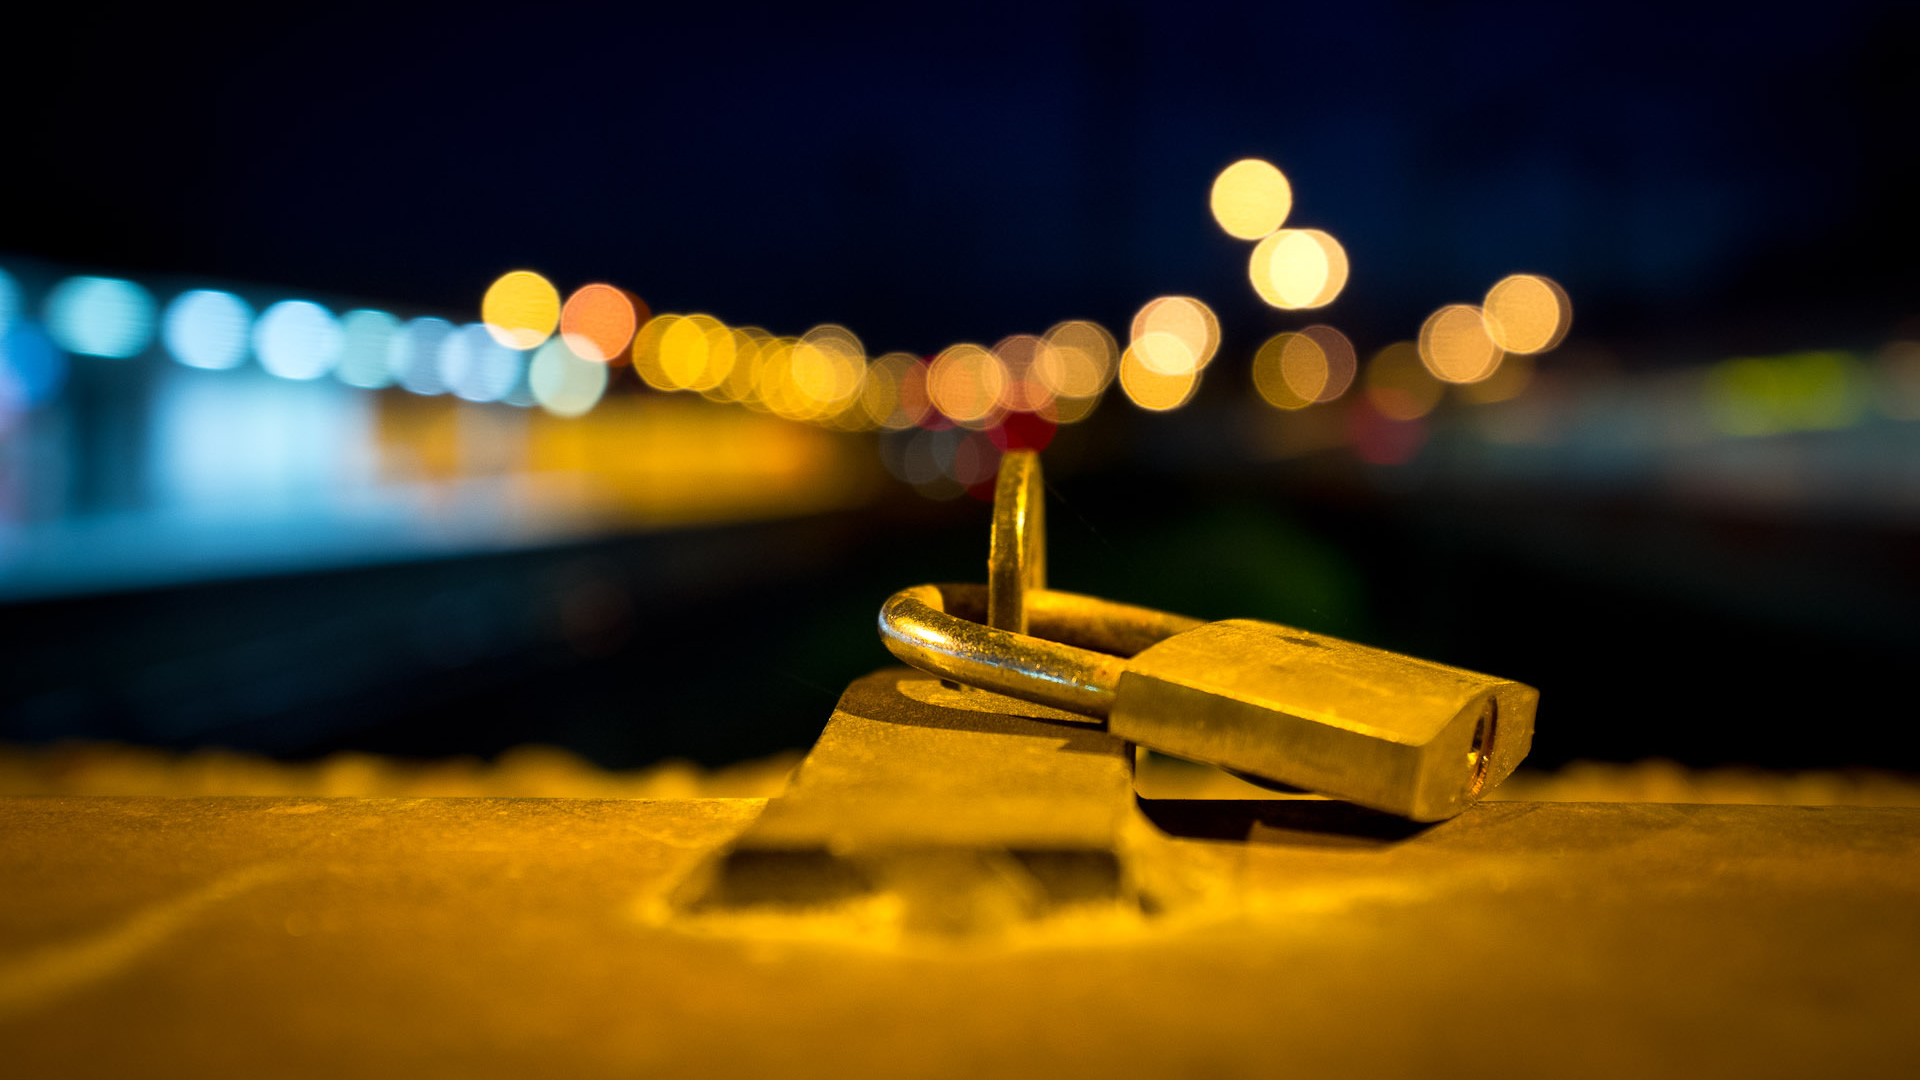 Padlock with Blurred City Lights HD Wallpaper 1080p HD Wallpapers 1920x1080